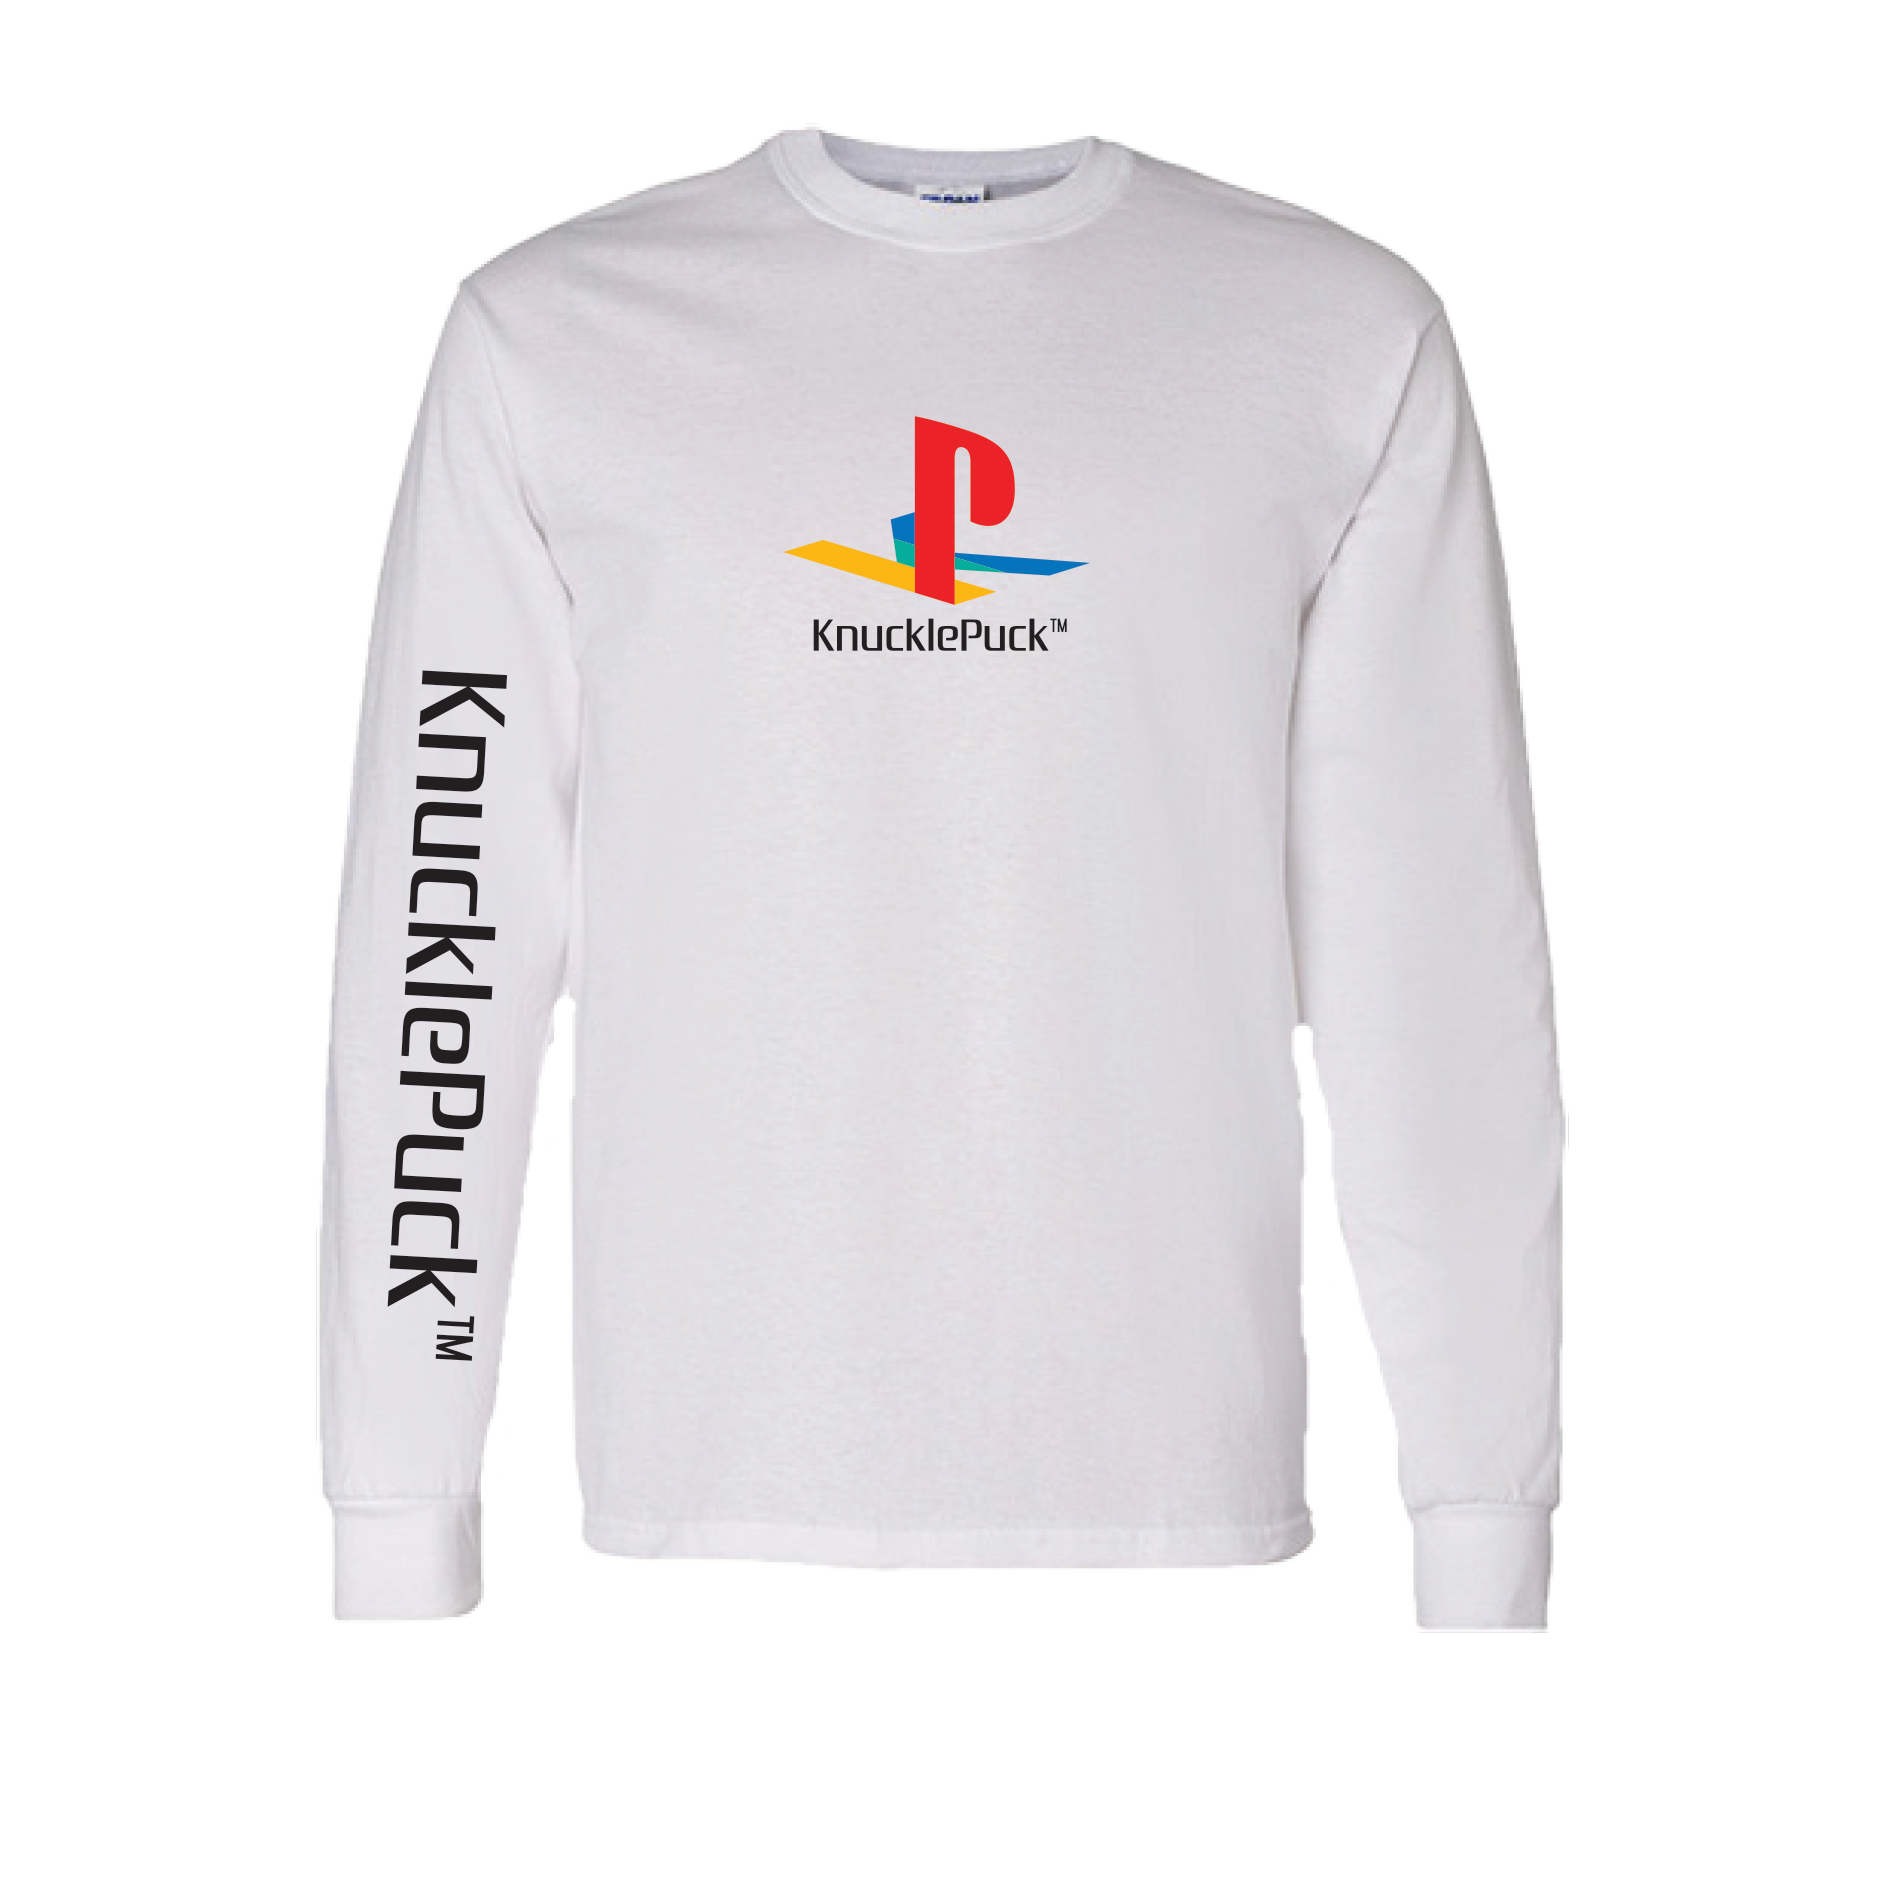 Playstation Longsleeve T-Shirt